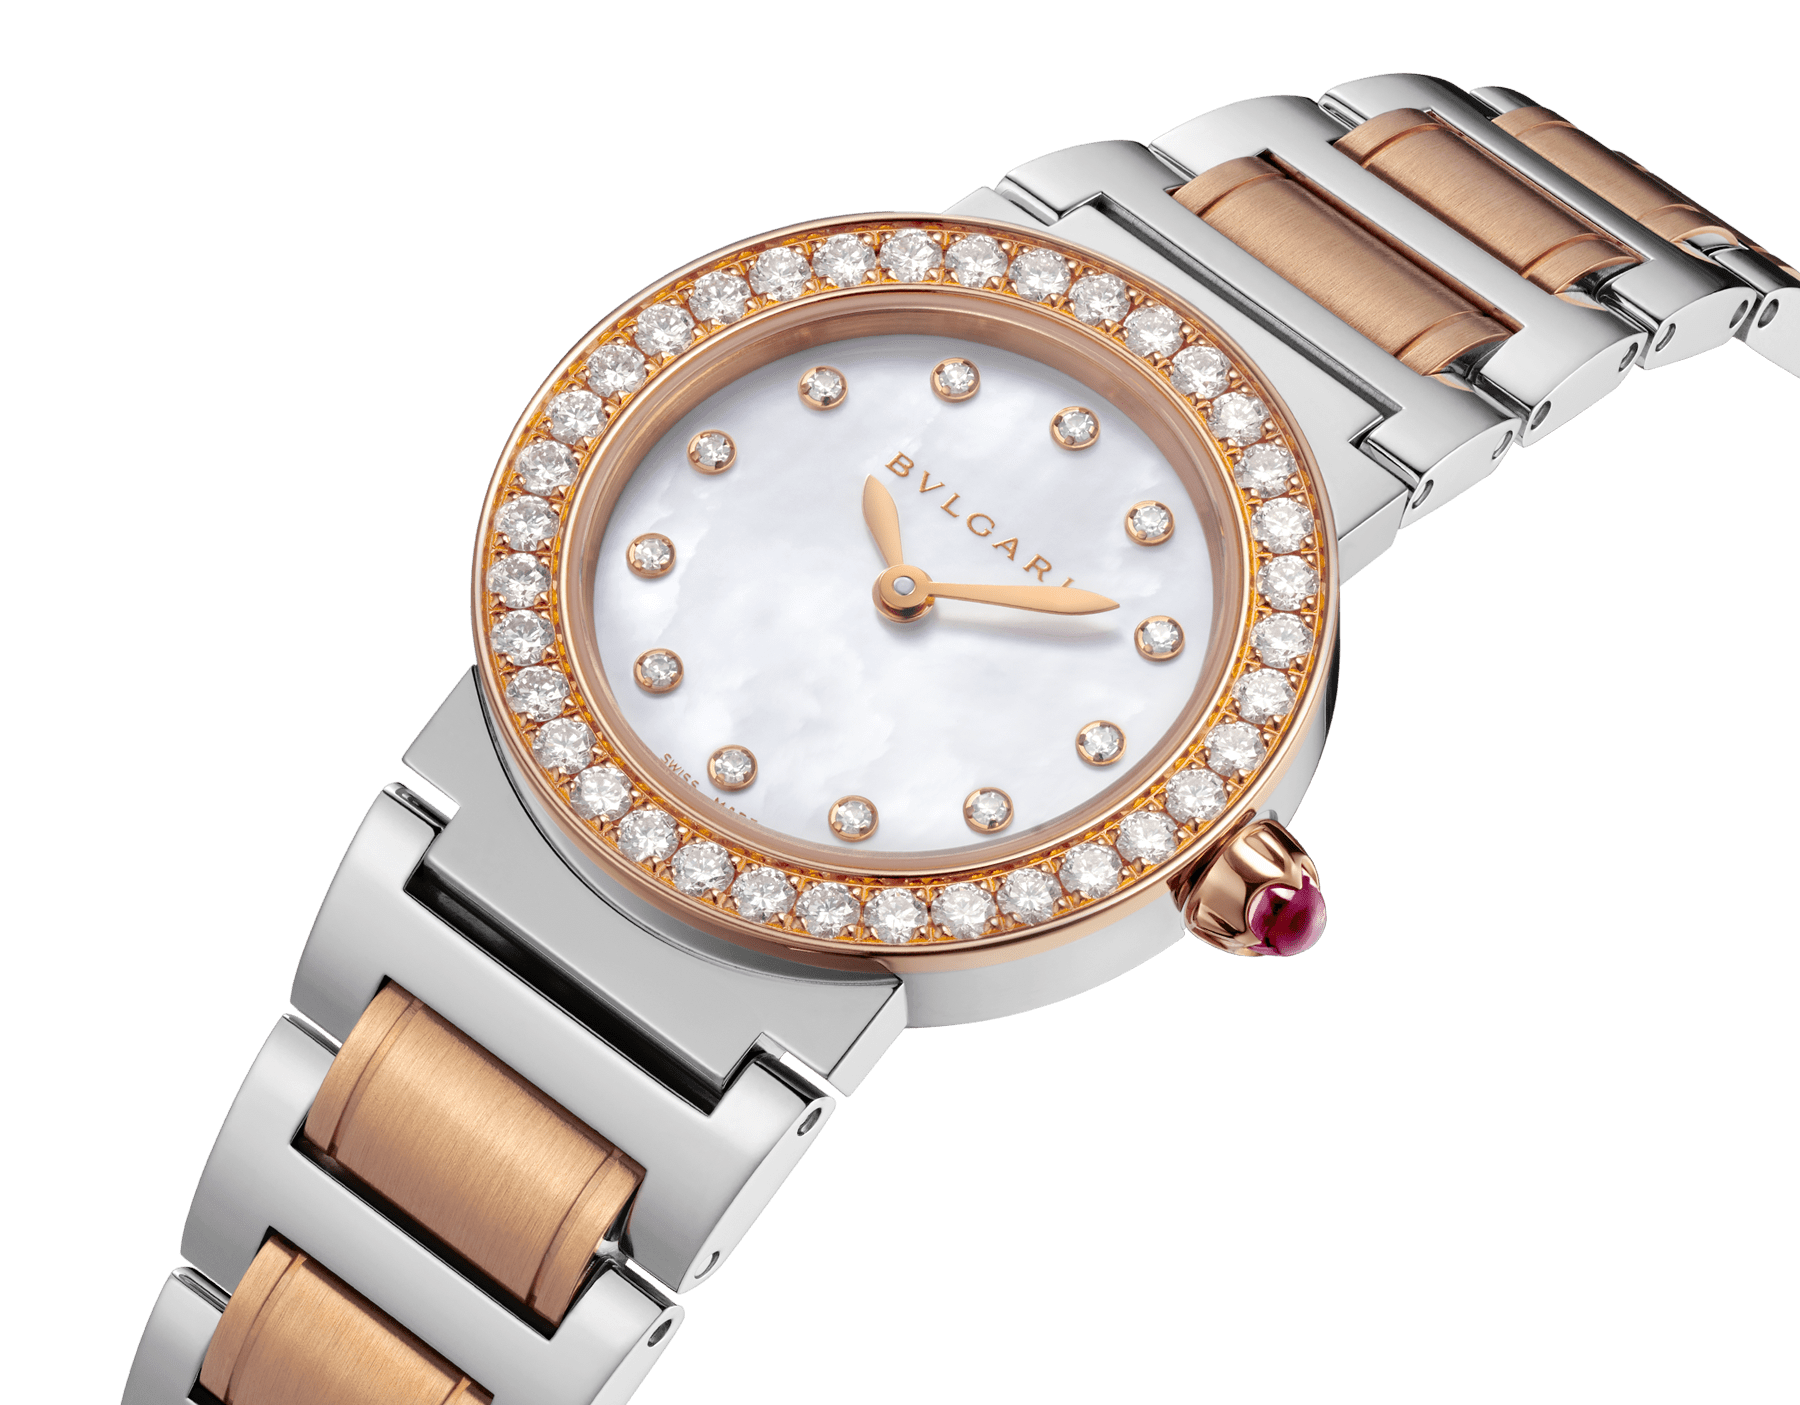 The BVLGARI BVLGARI watch has a stainless steel case, 18 kt rose gold bezel set with diamonds, white mother-of-pearl dial set with diamond indices and a stainless steel and 18 kt rose gold bracelet. 102477 image 2